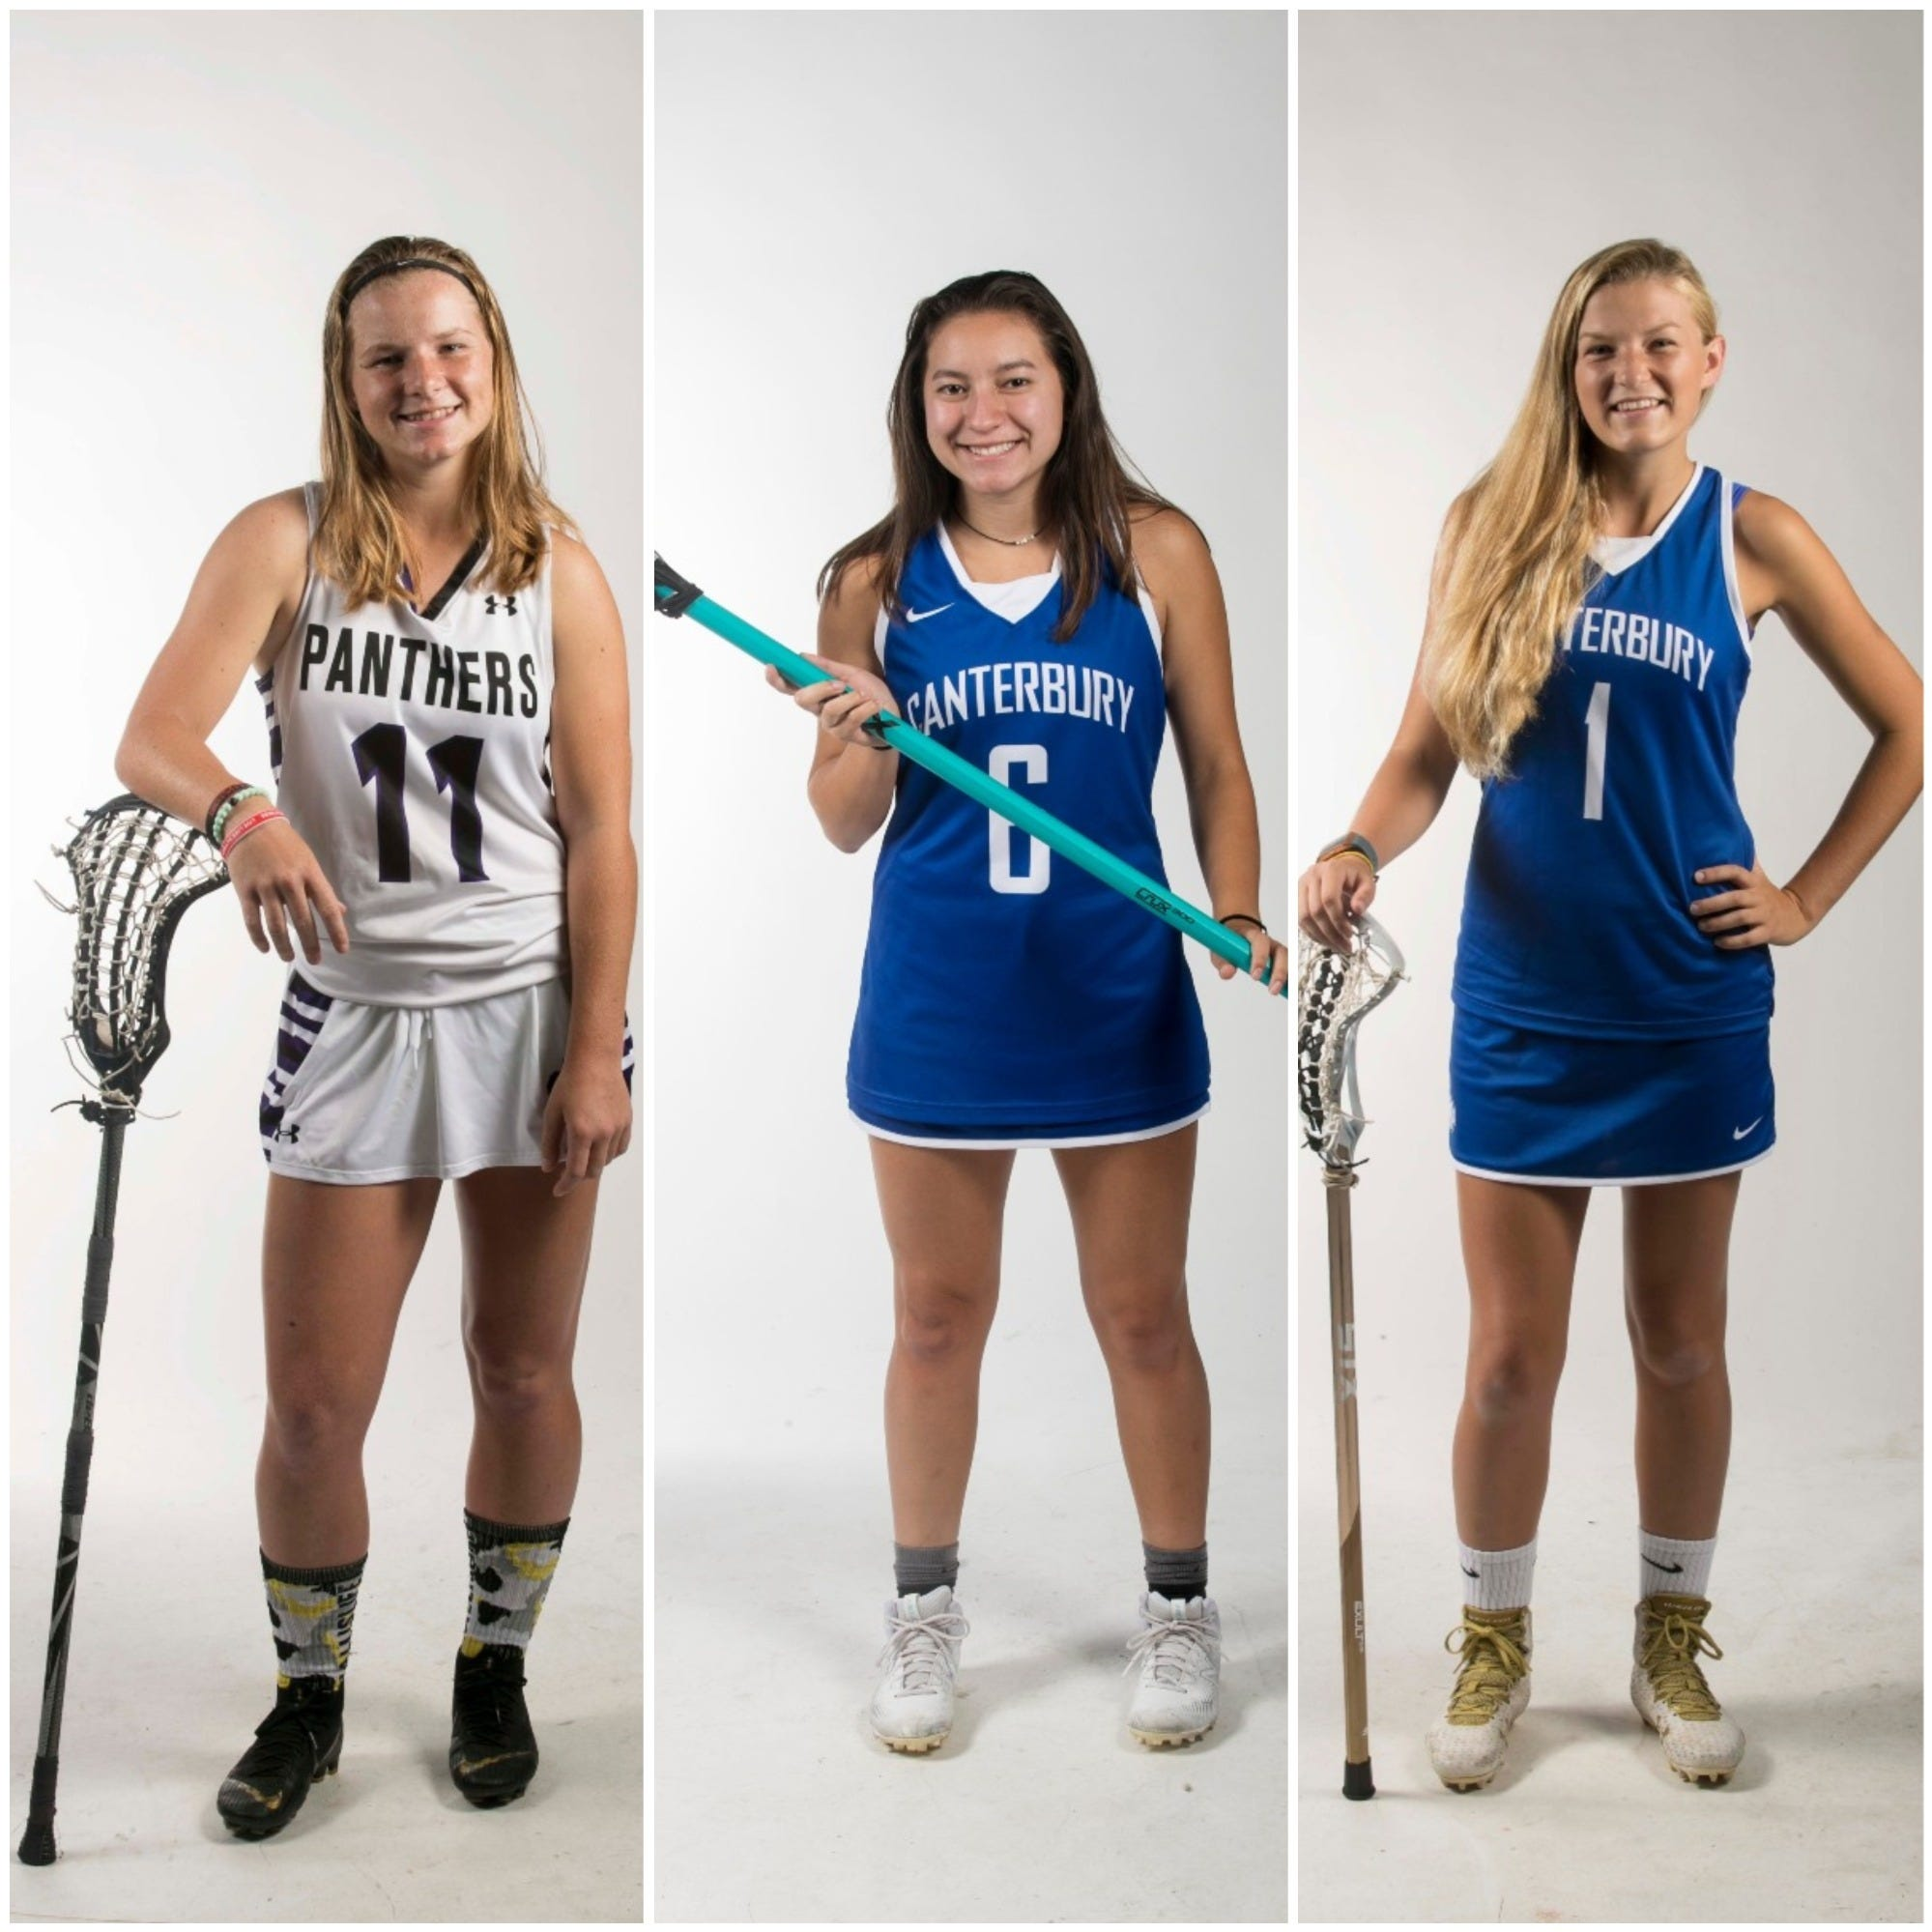 The News-Press 2019 All-Area Girls Lacrosse team